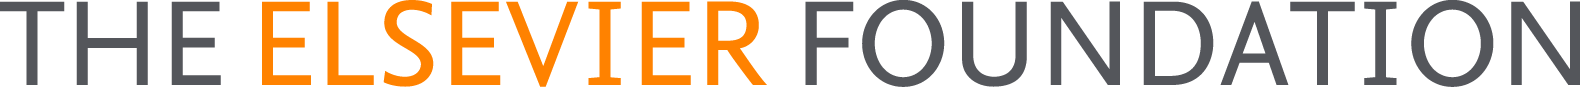 The Elsevier Foundation logo